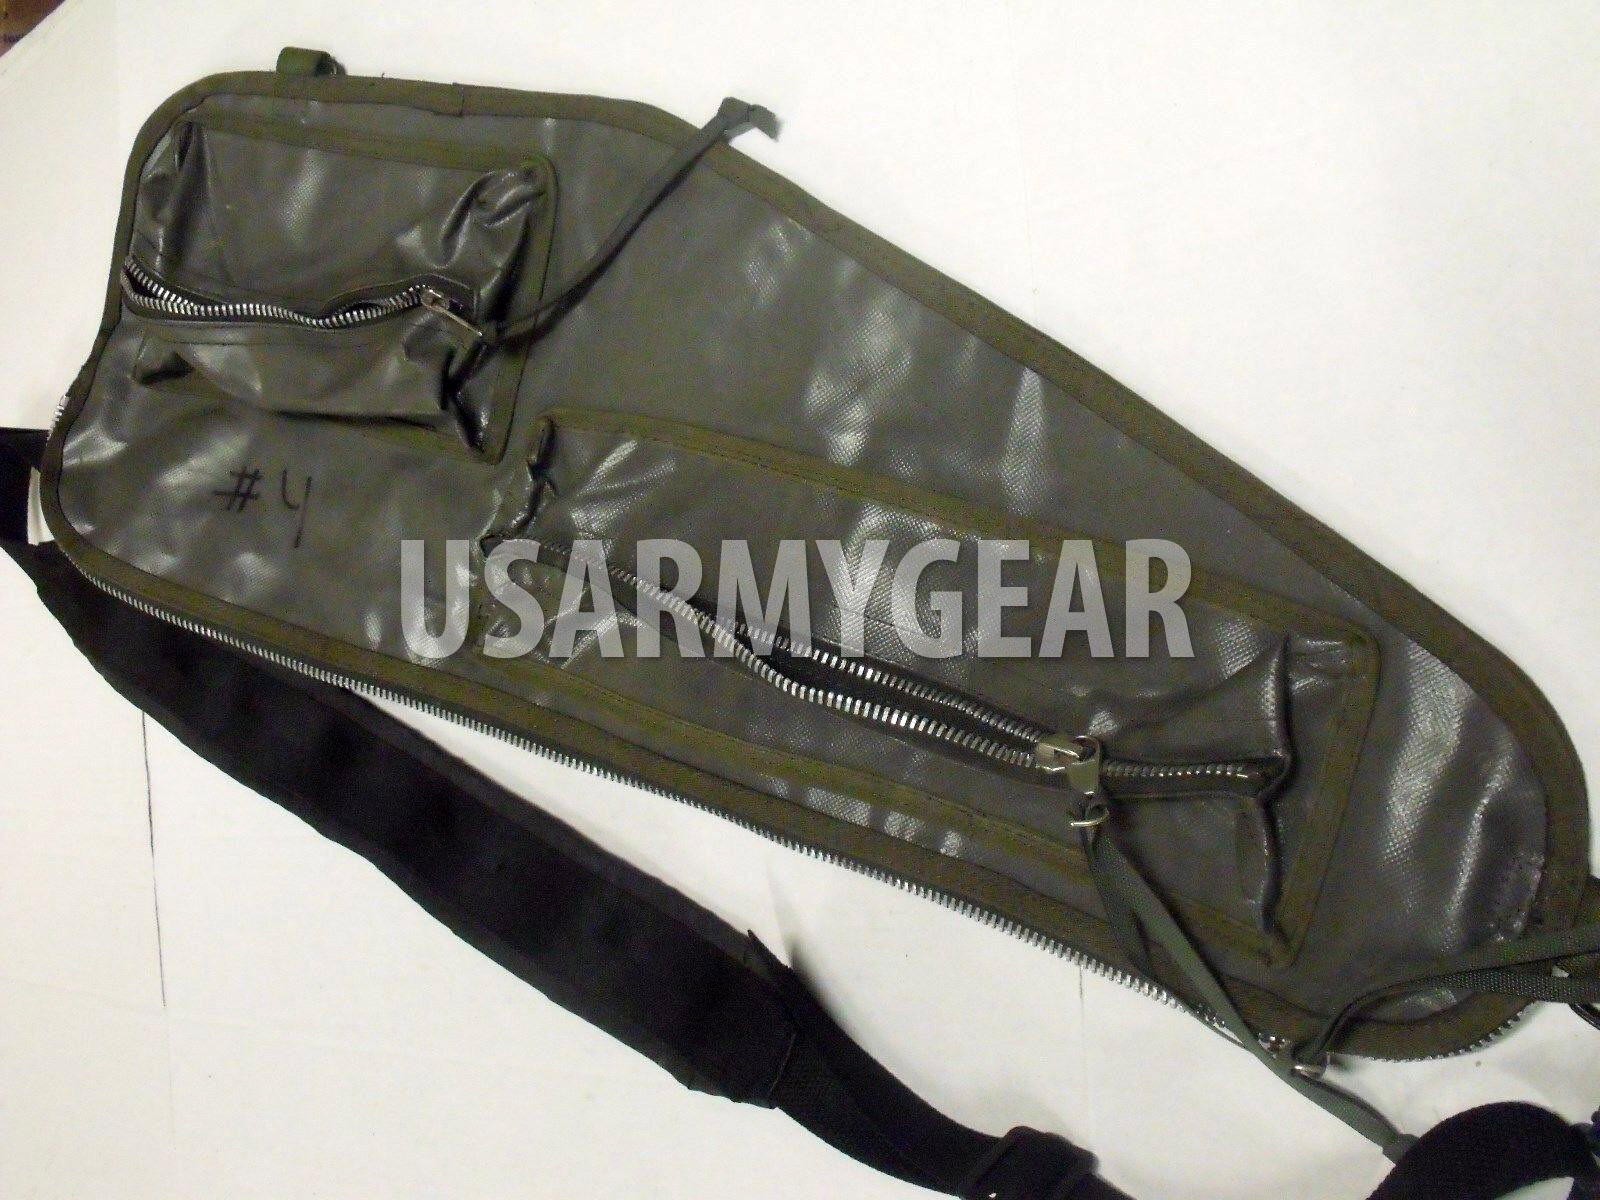 US Army Military Spare Barrel Rifle Carrying Case Range Bag OD Vietnam M60 GPMG